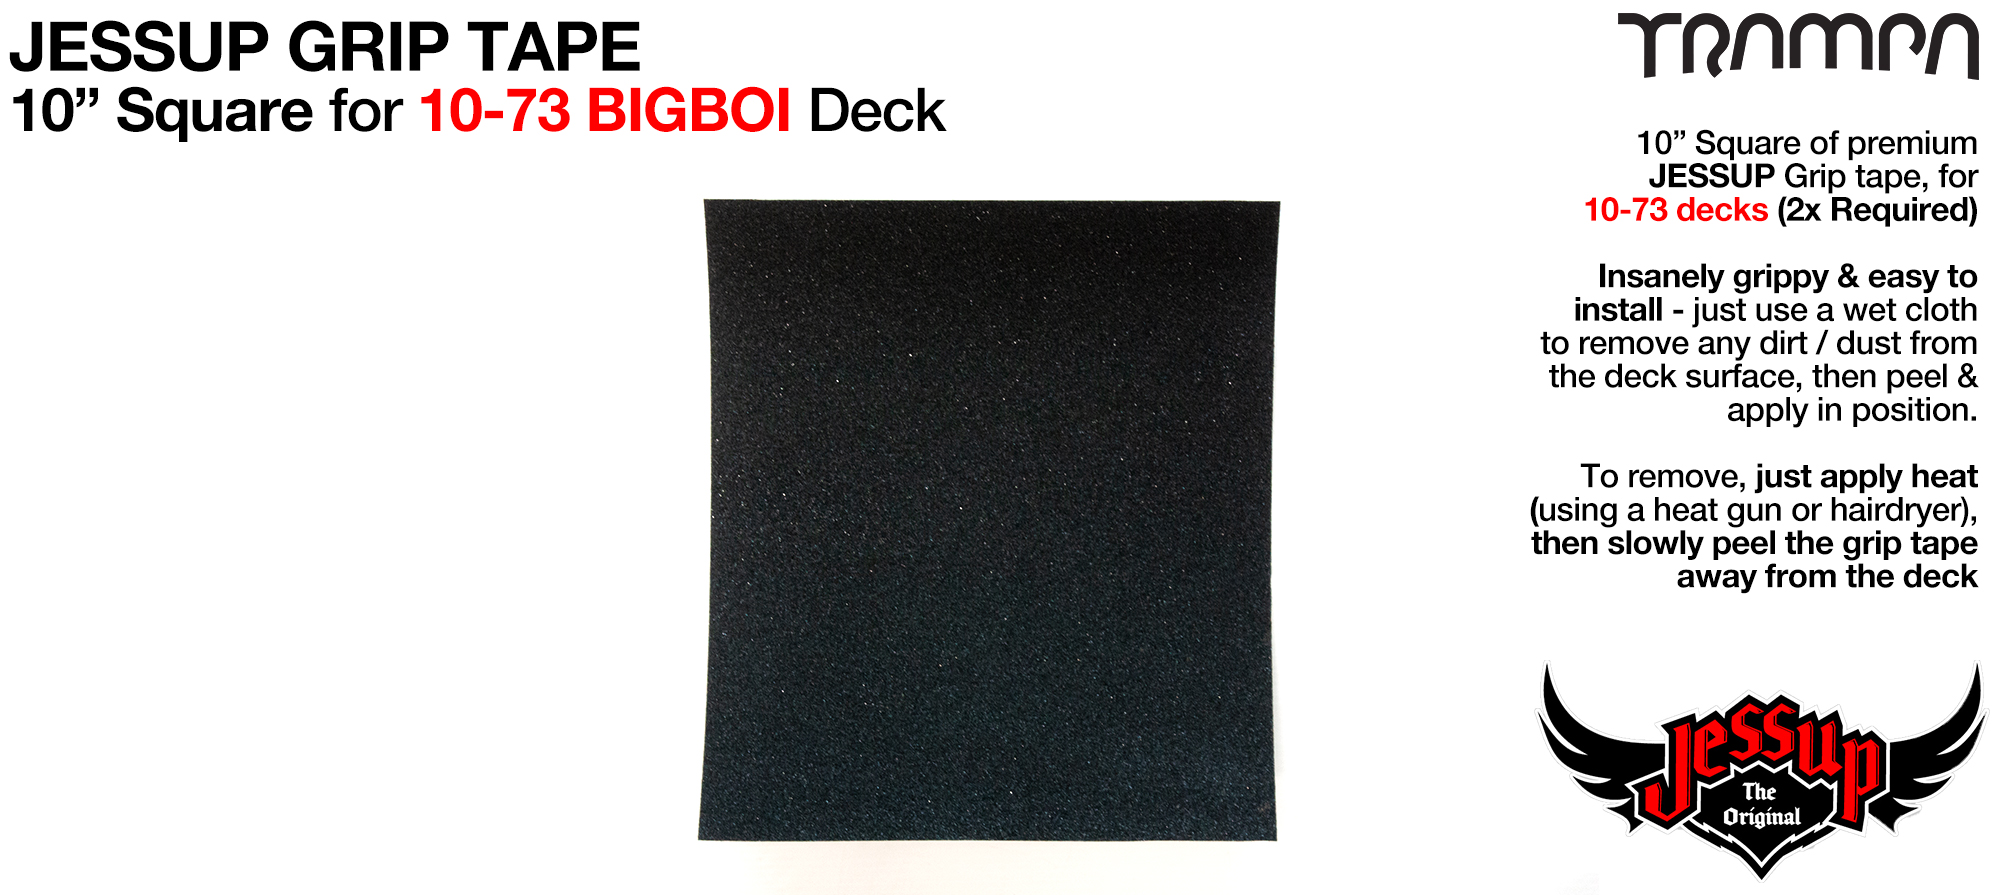 1x 10 Inch squares of Top Quality Jessup Grip tape